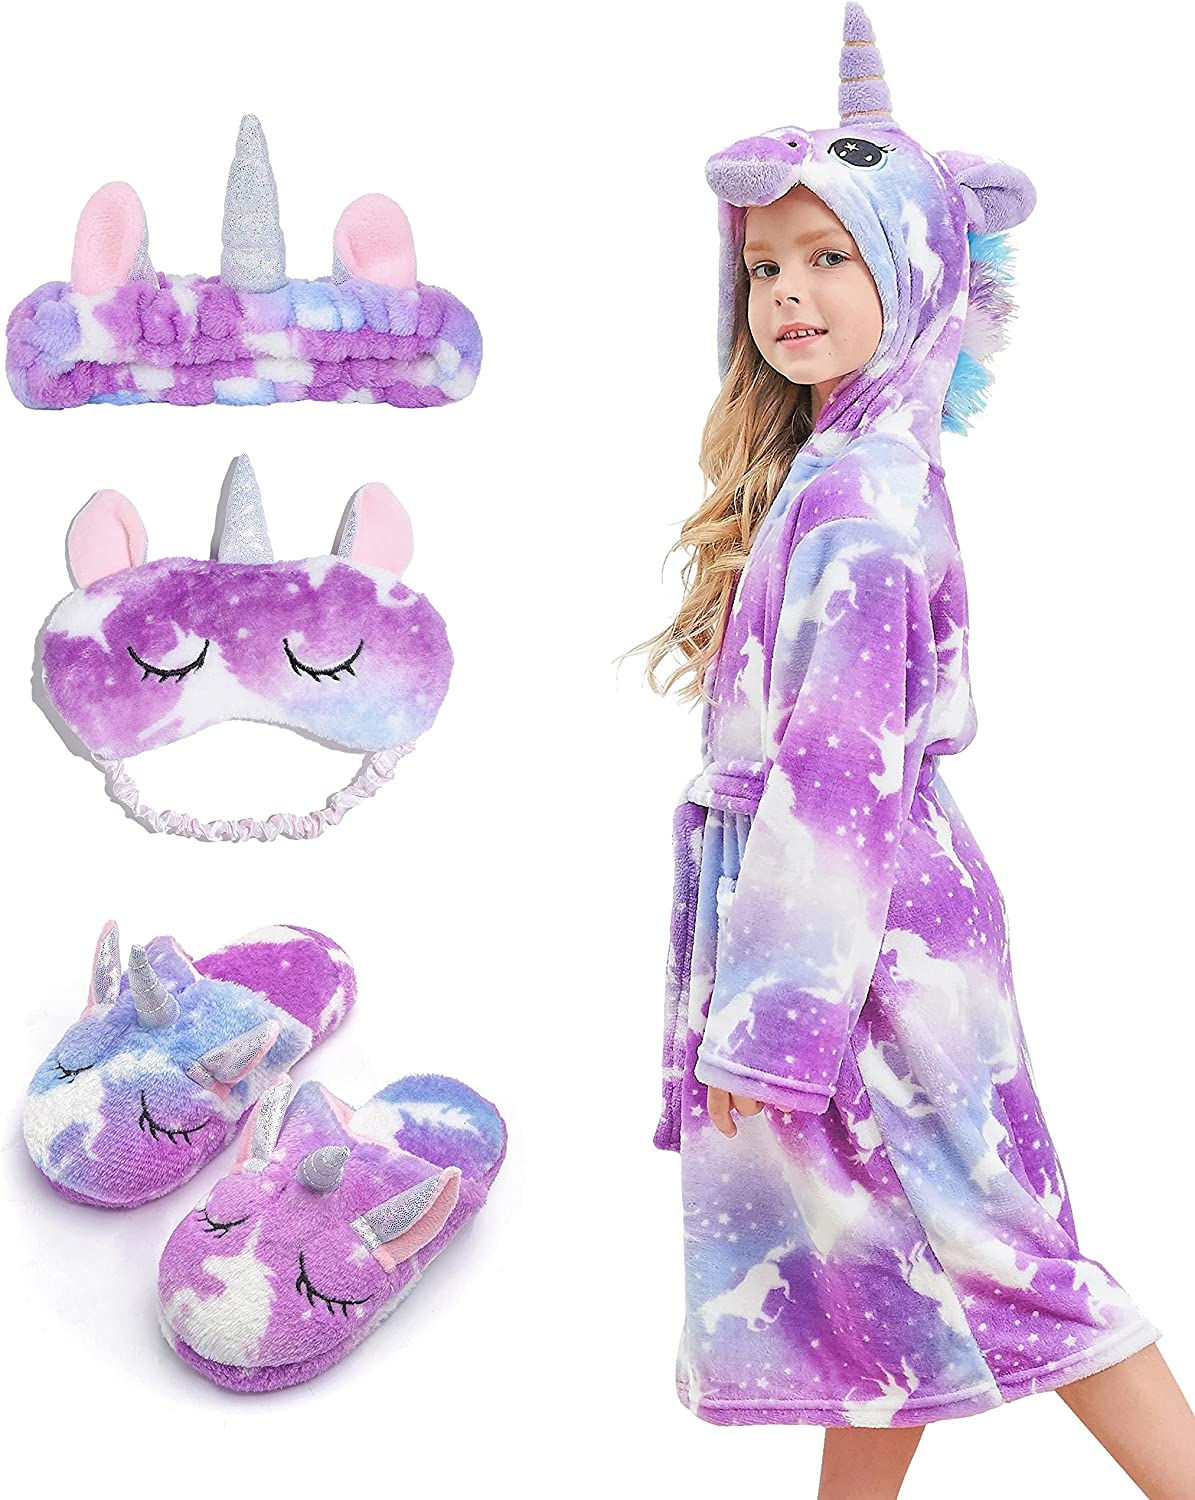 HulovoX Unicorn Hooded Max 54% OFF Bathrobe Matching Ranking TOP19 Slippers with